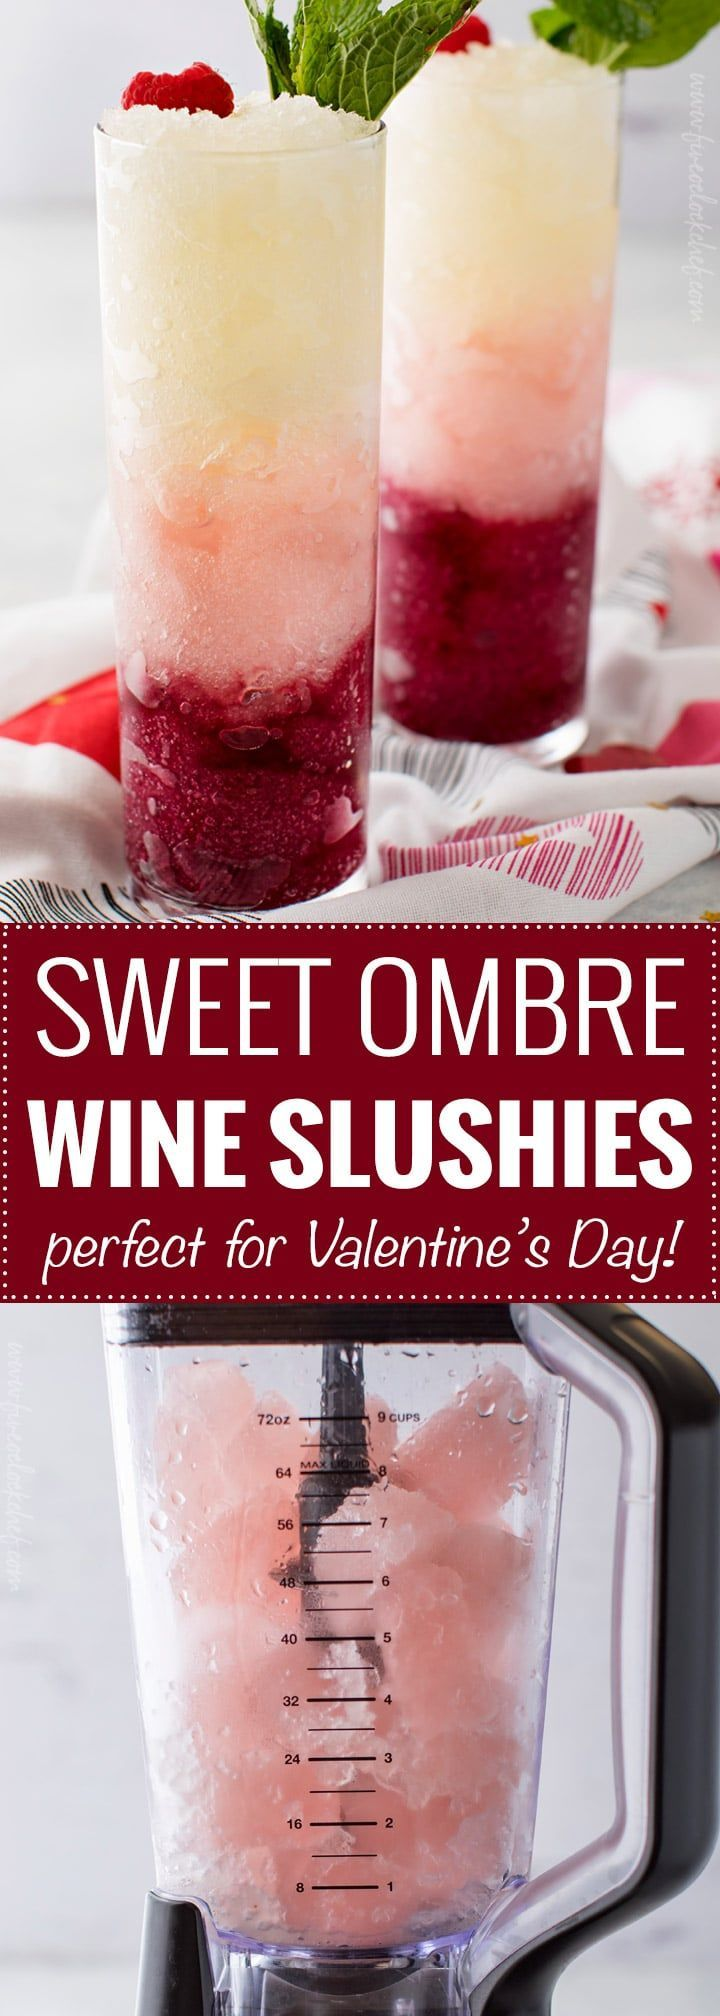 Sweet Ombre Wine Slushies | Three types of sweet wine are frozen into ice cubes, blended and layered to create a drink that's every bit as delicious as it is beautiful